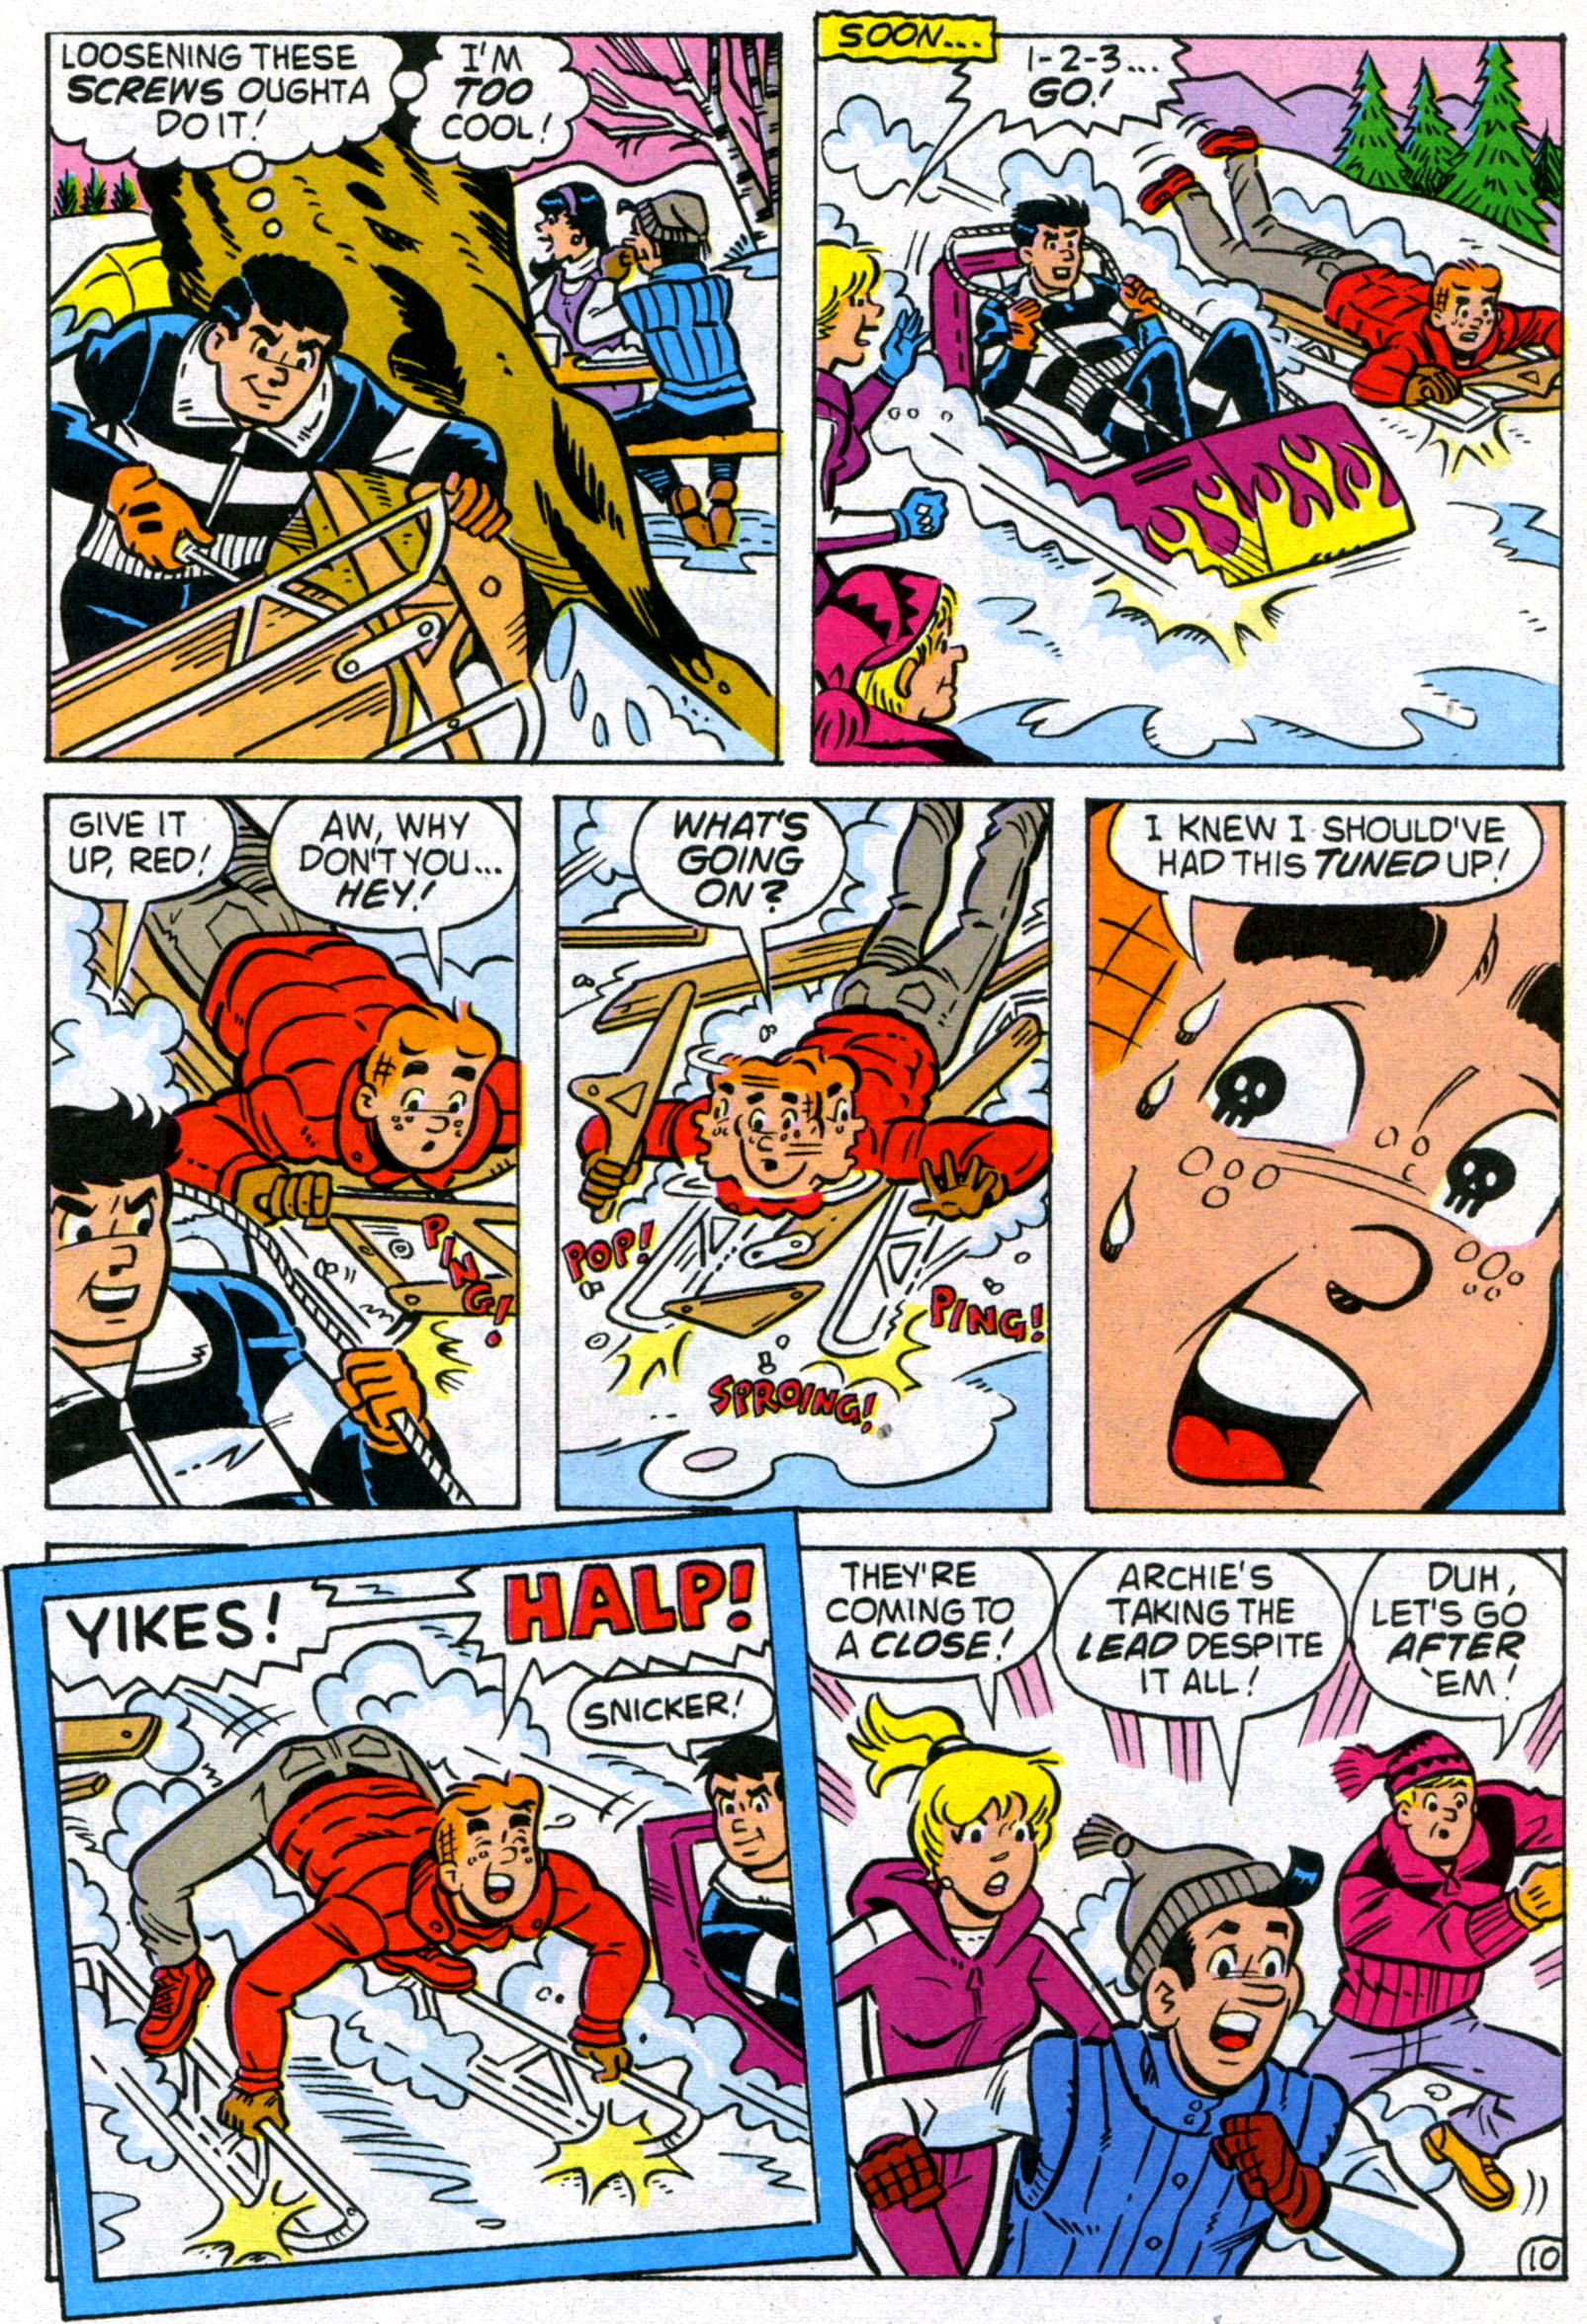 Read online World of Archie comic -  Issue #8 - 16